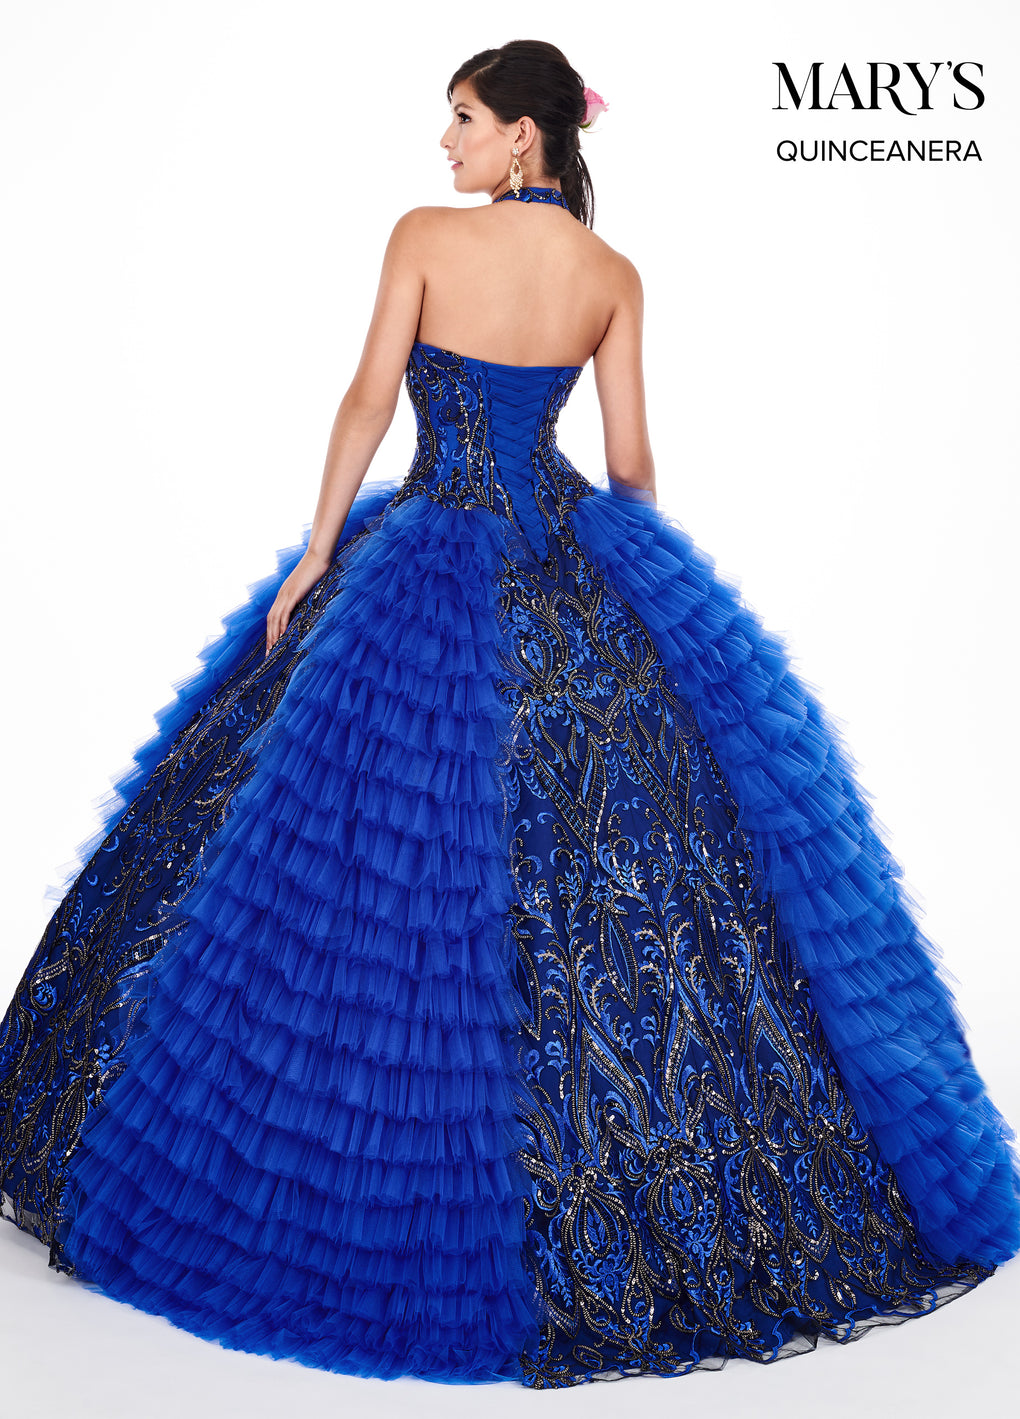 Marys Quinceanera Dresses in Royal/Gold or Berry/Black Color